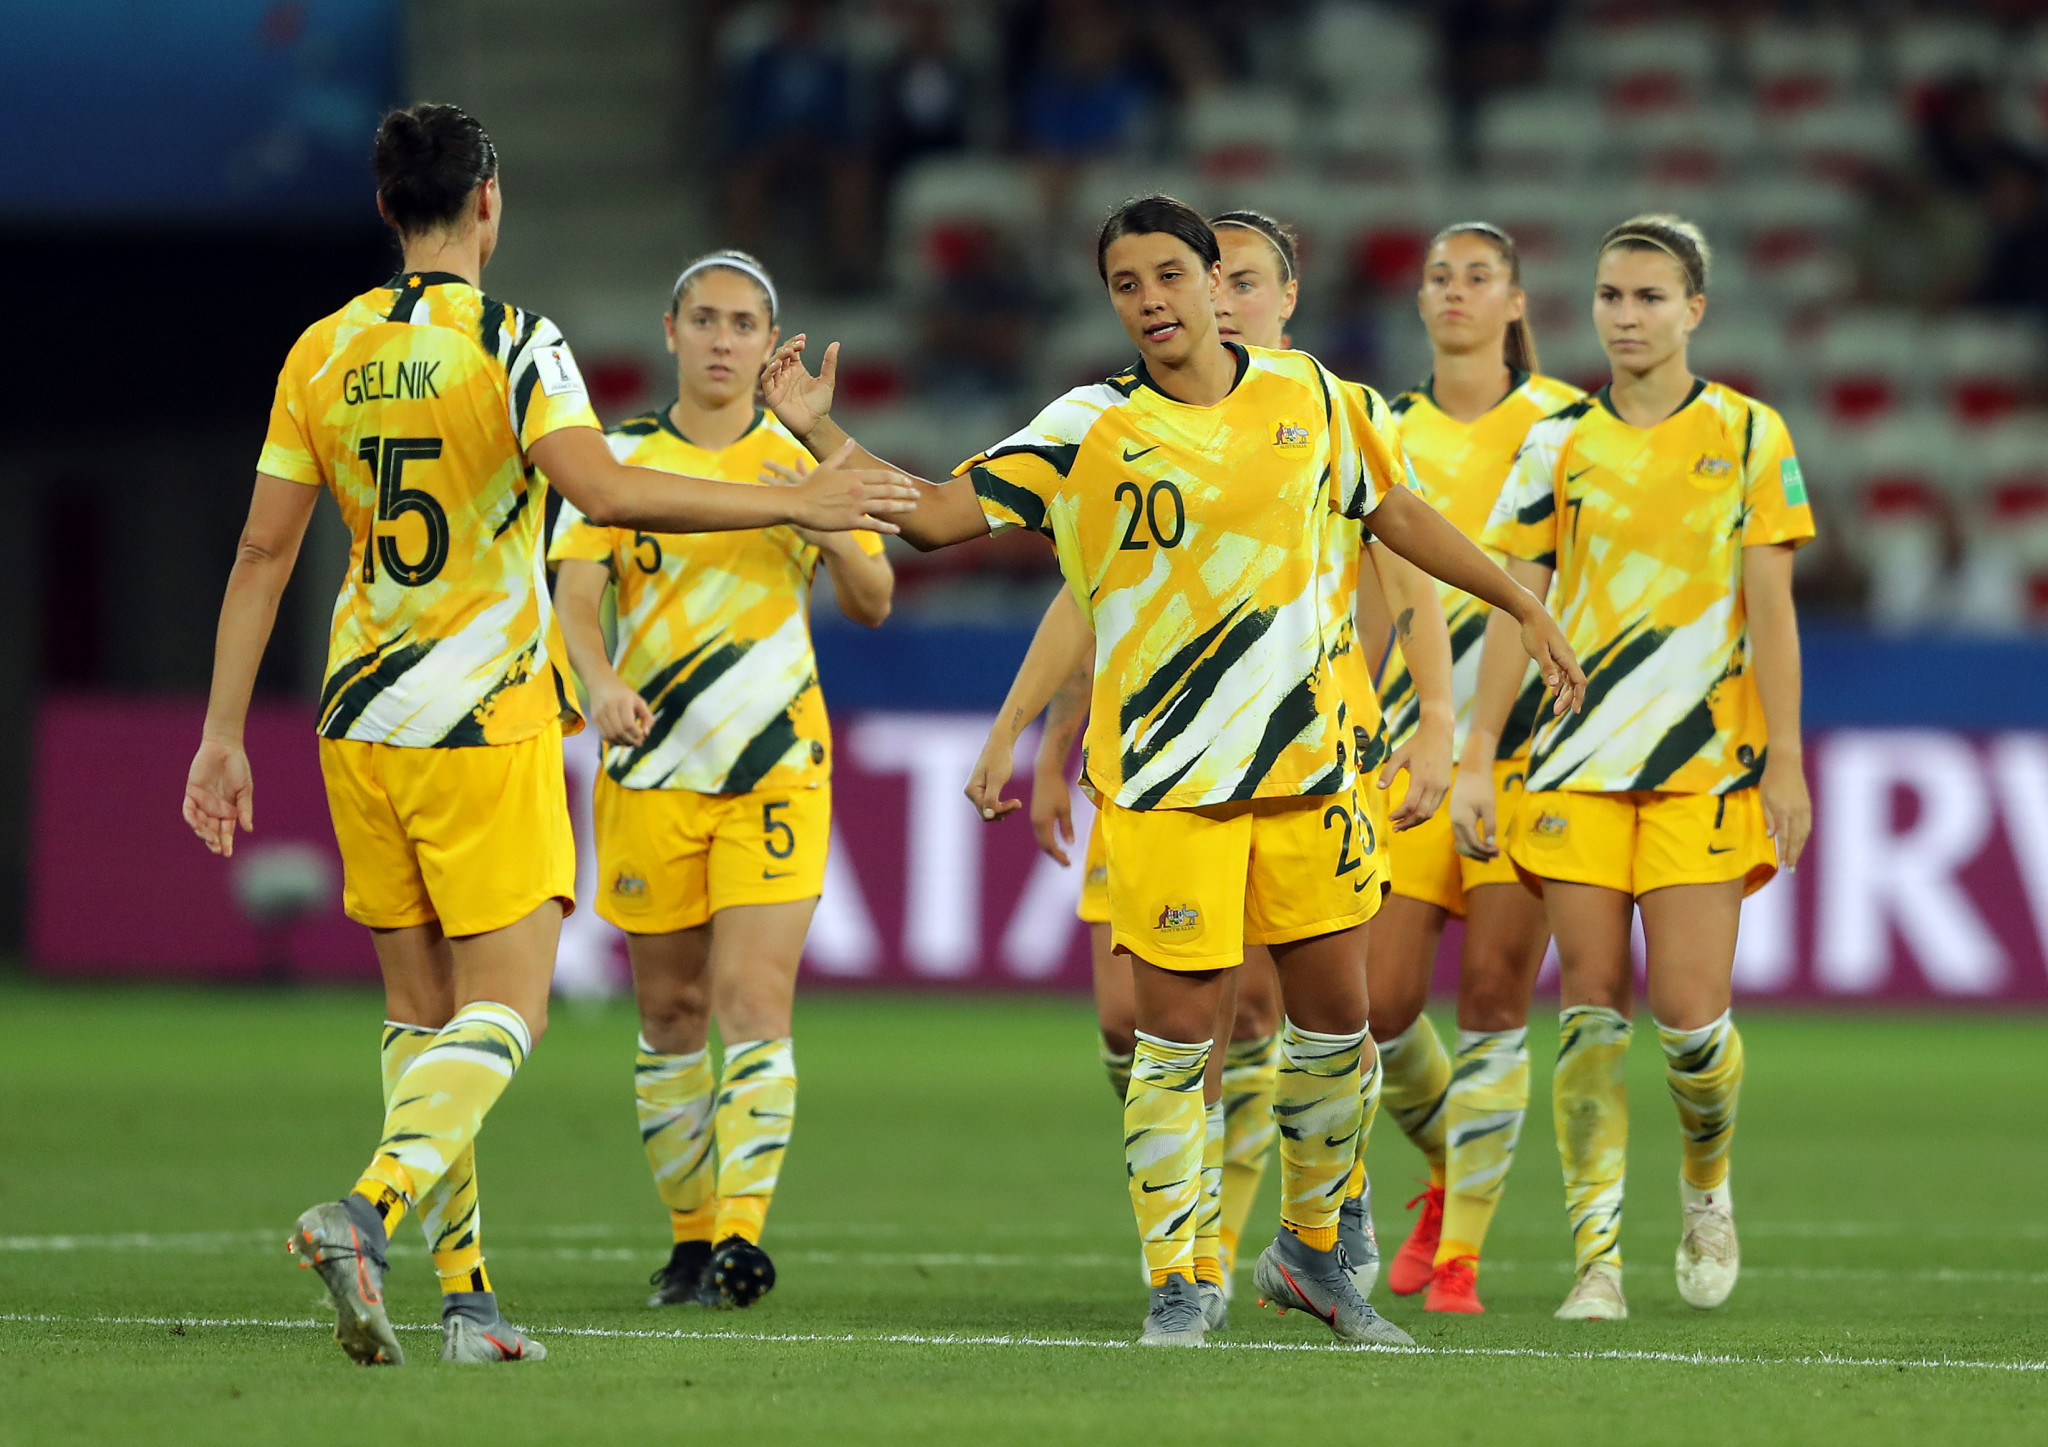 Australia have competed in the FIFA Women's World Cup seven times and reached the last 16 at France 2019 ©Getty Images